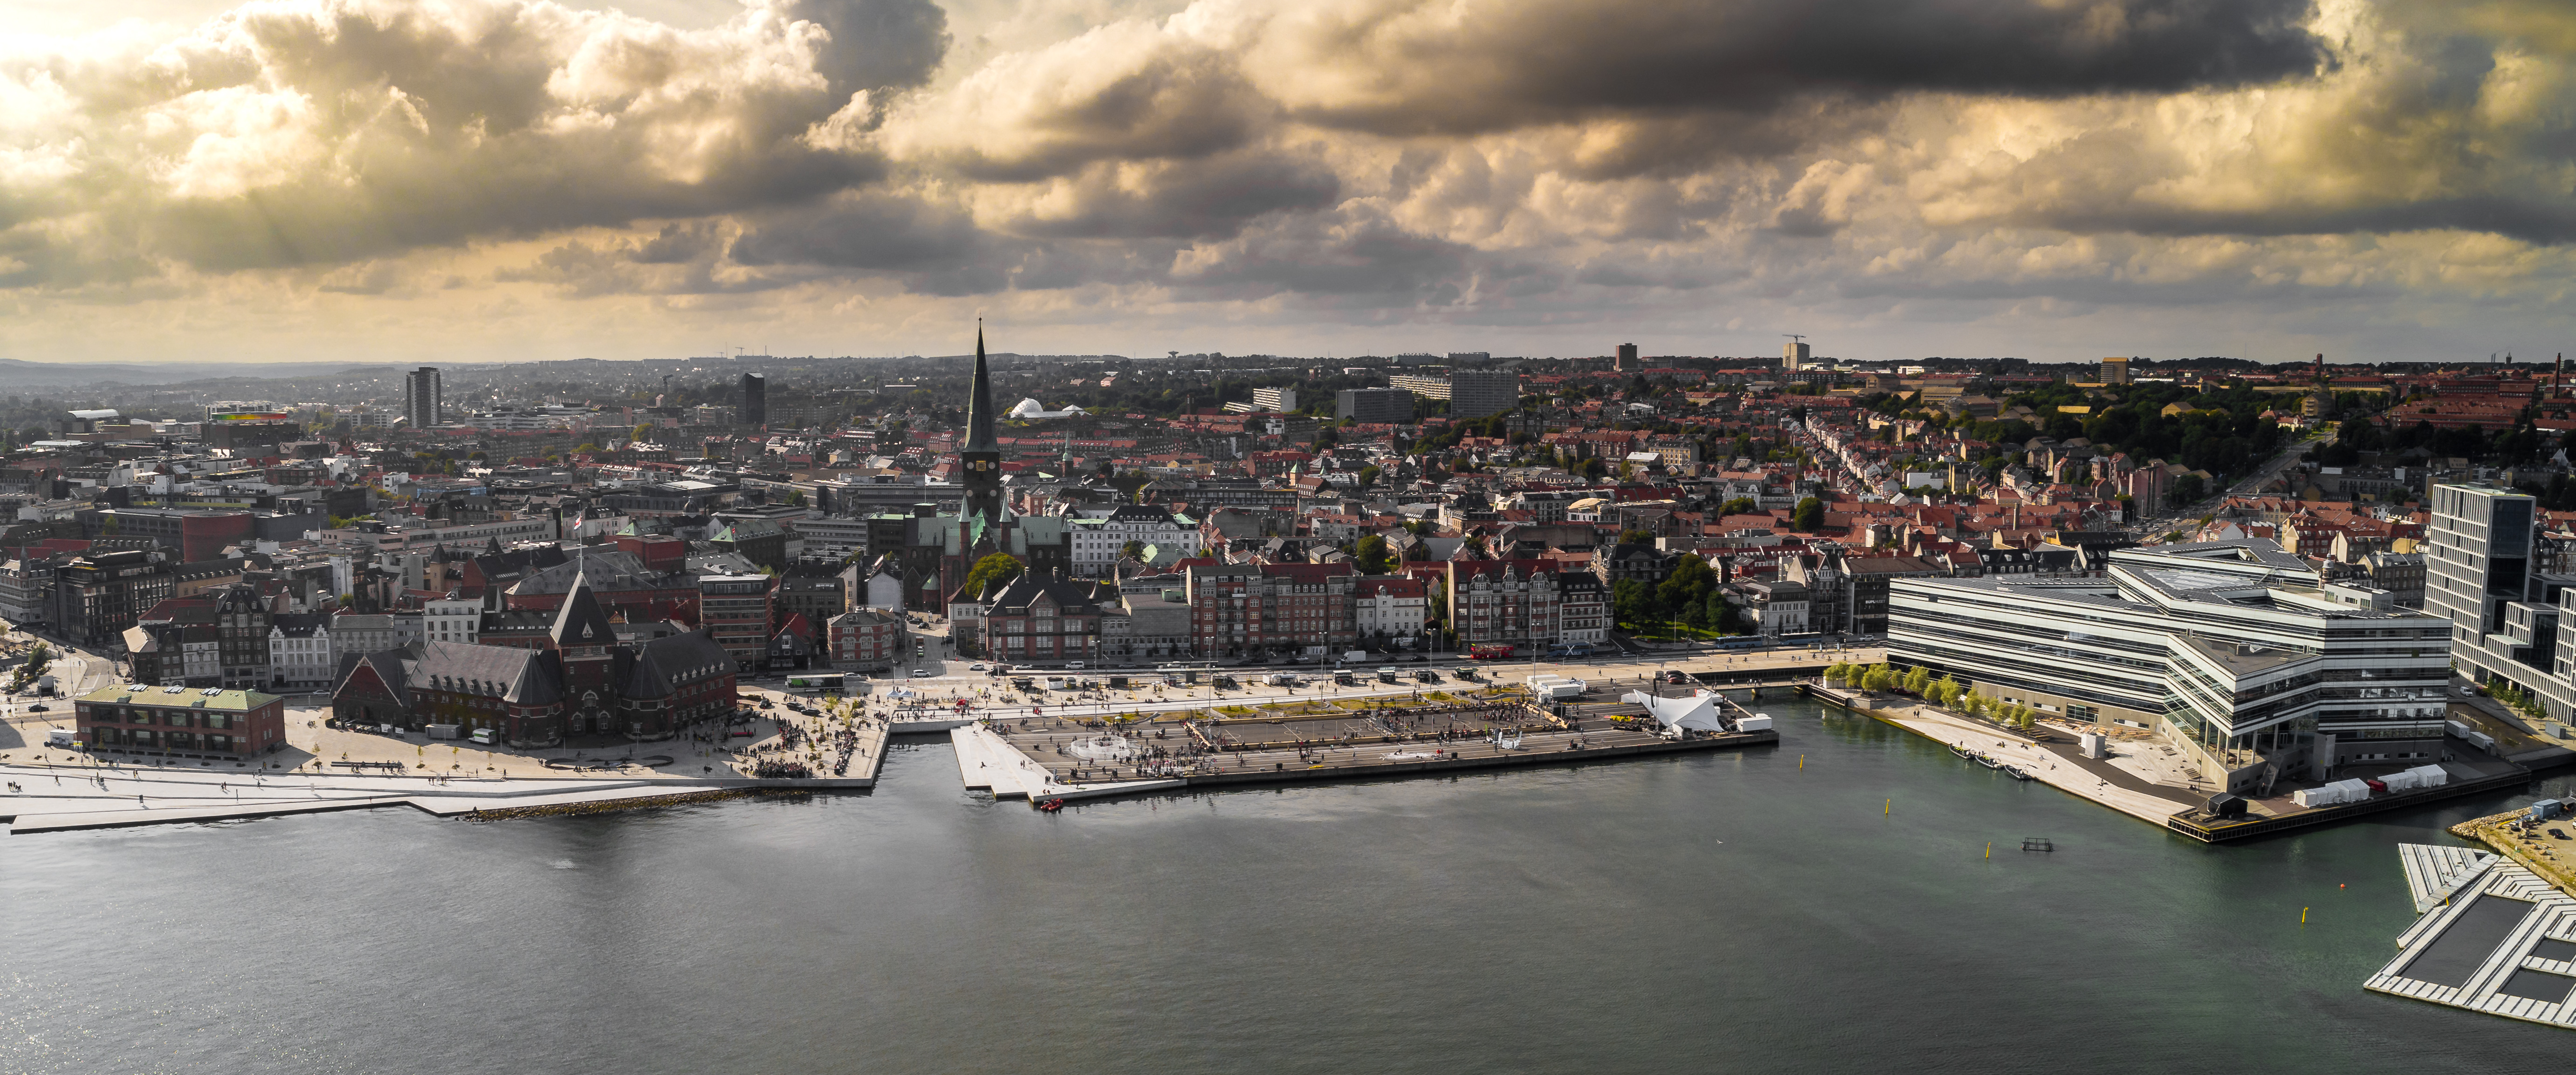 Drone view of waterfront of Aarhus